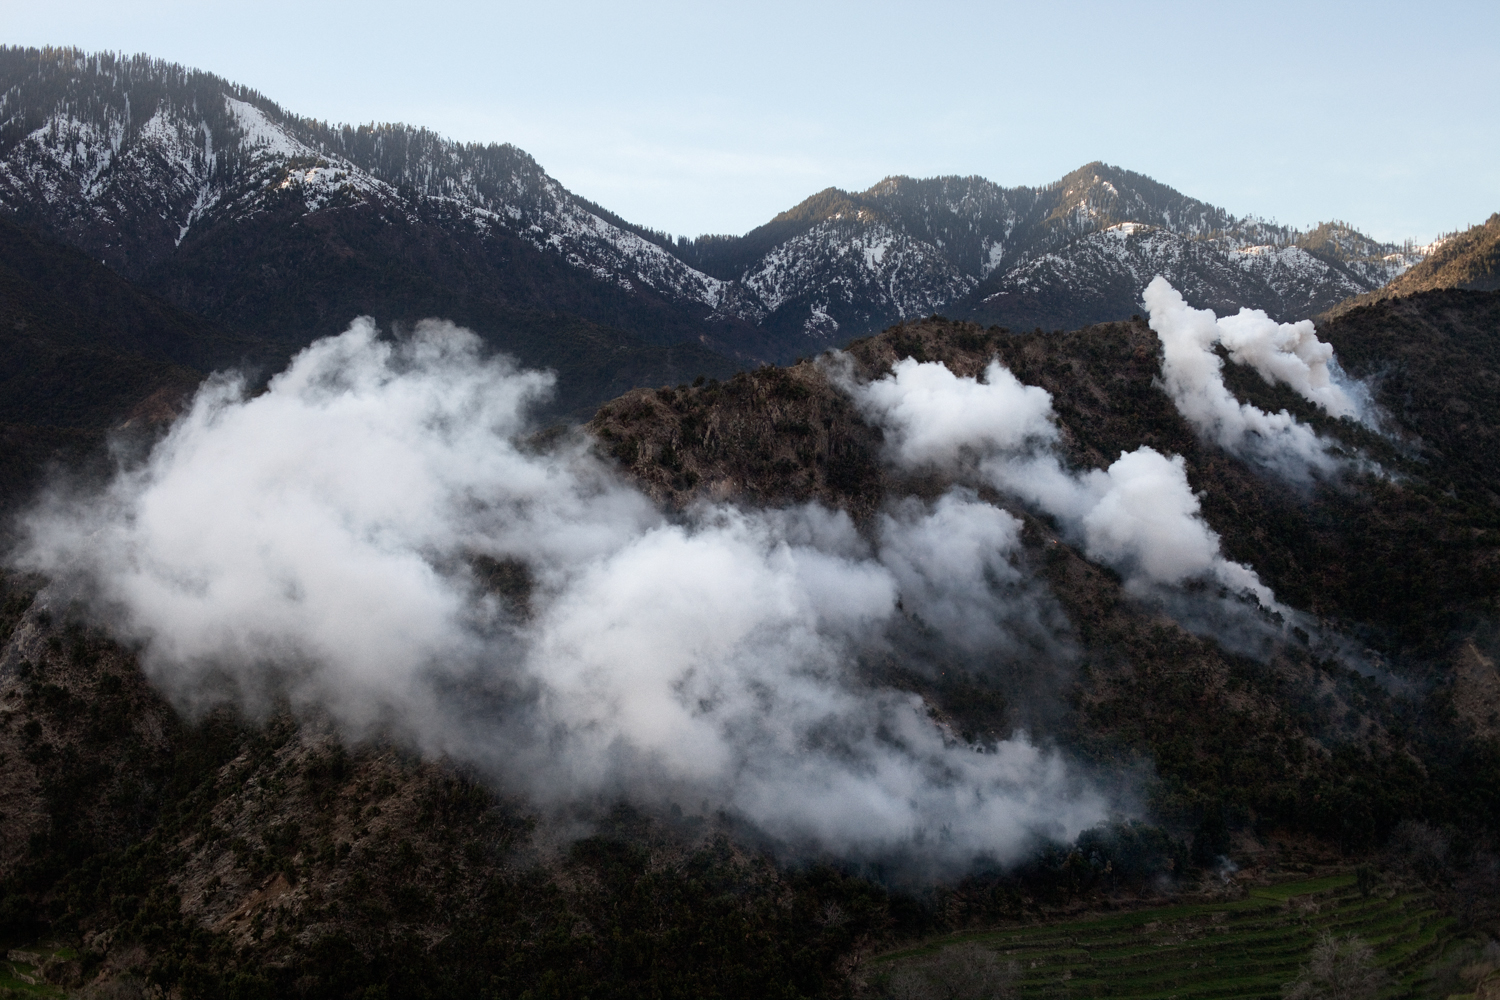 Smoke clouds from white phosphorous mortars fired by U.S. Army in the Korengal Valley, Kunar Province, Afghanistan.